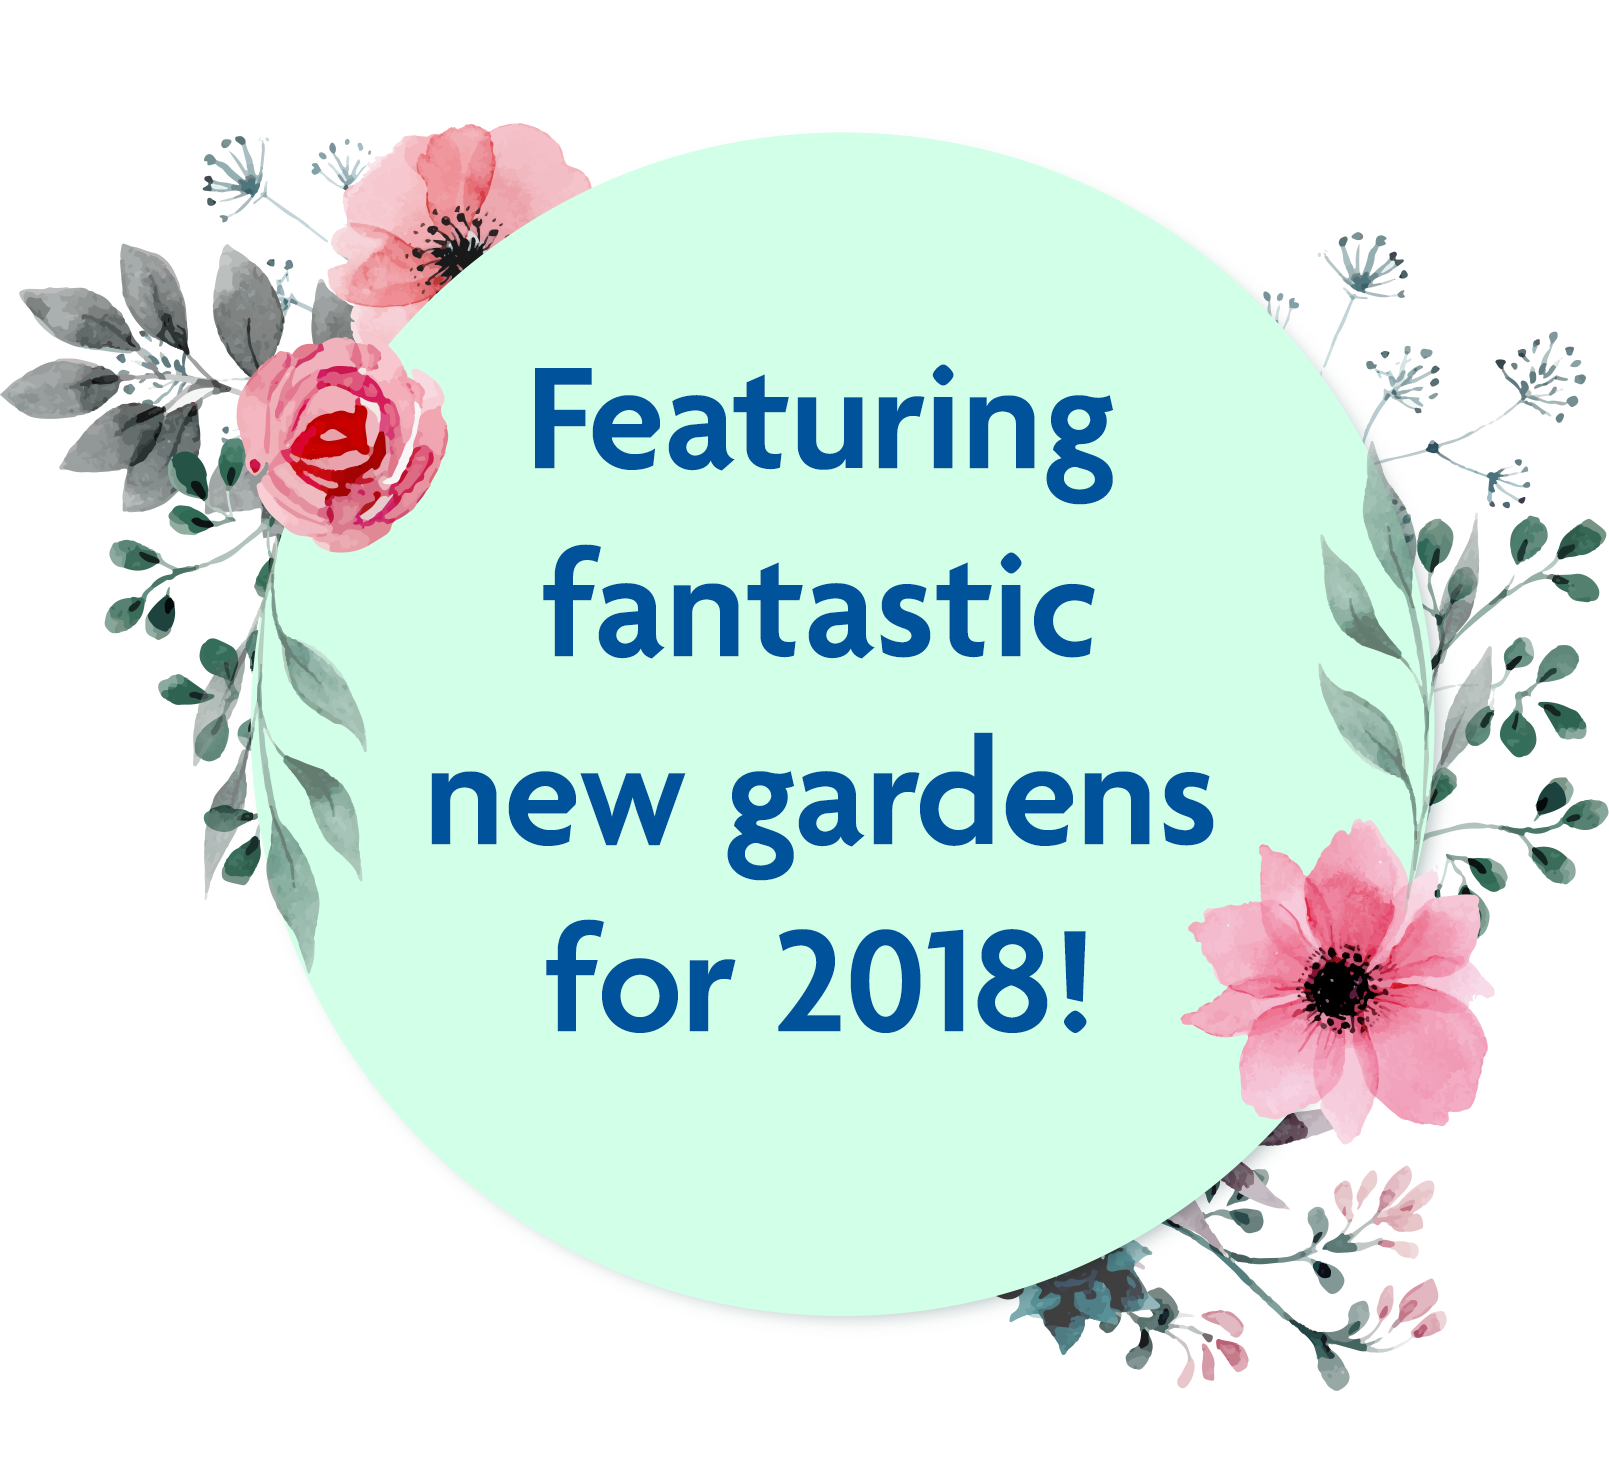 Featuring fantastic new gardens for 2018!